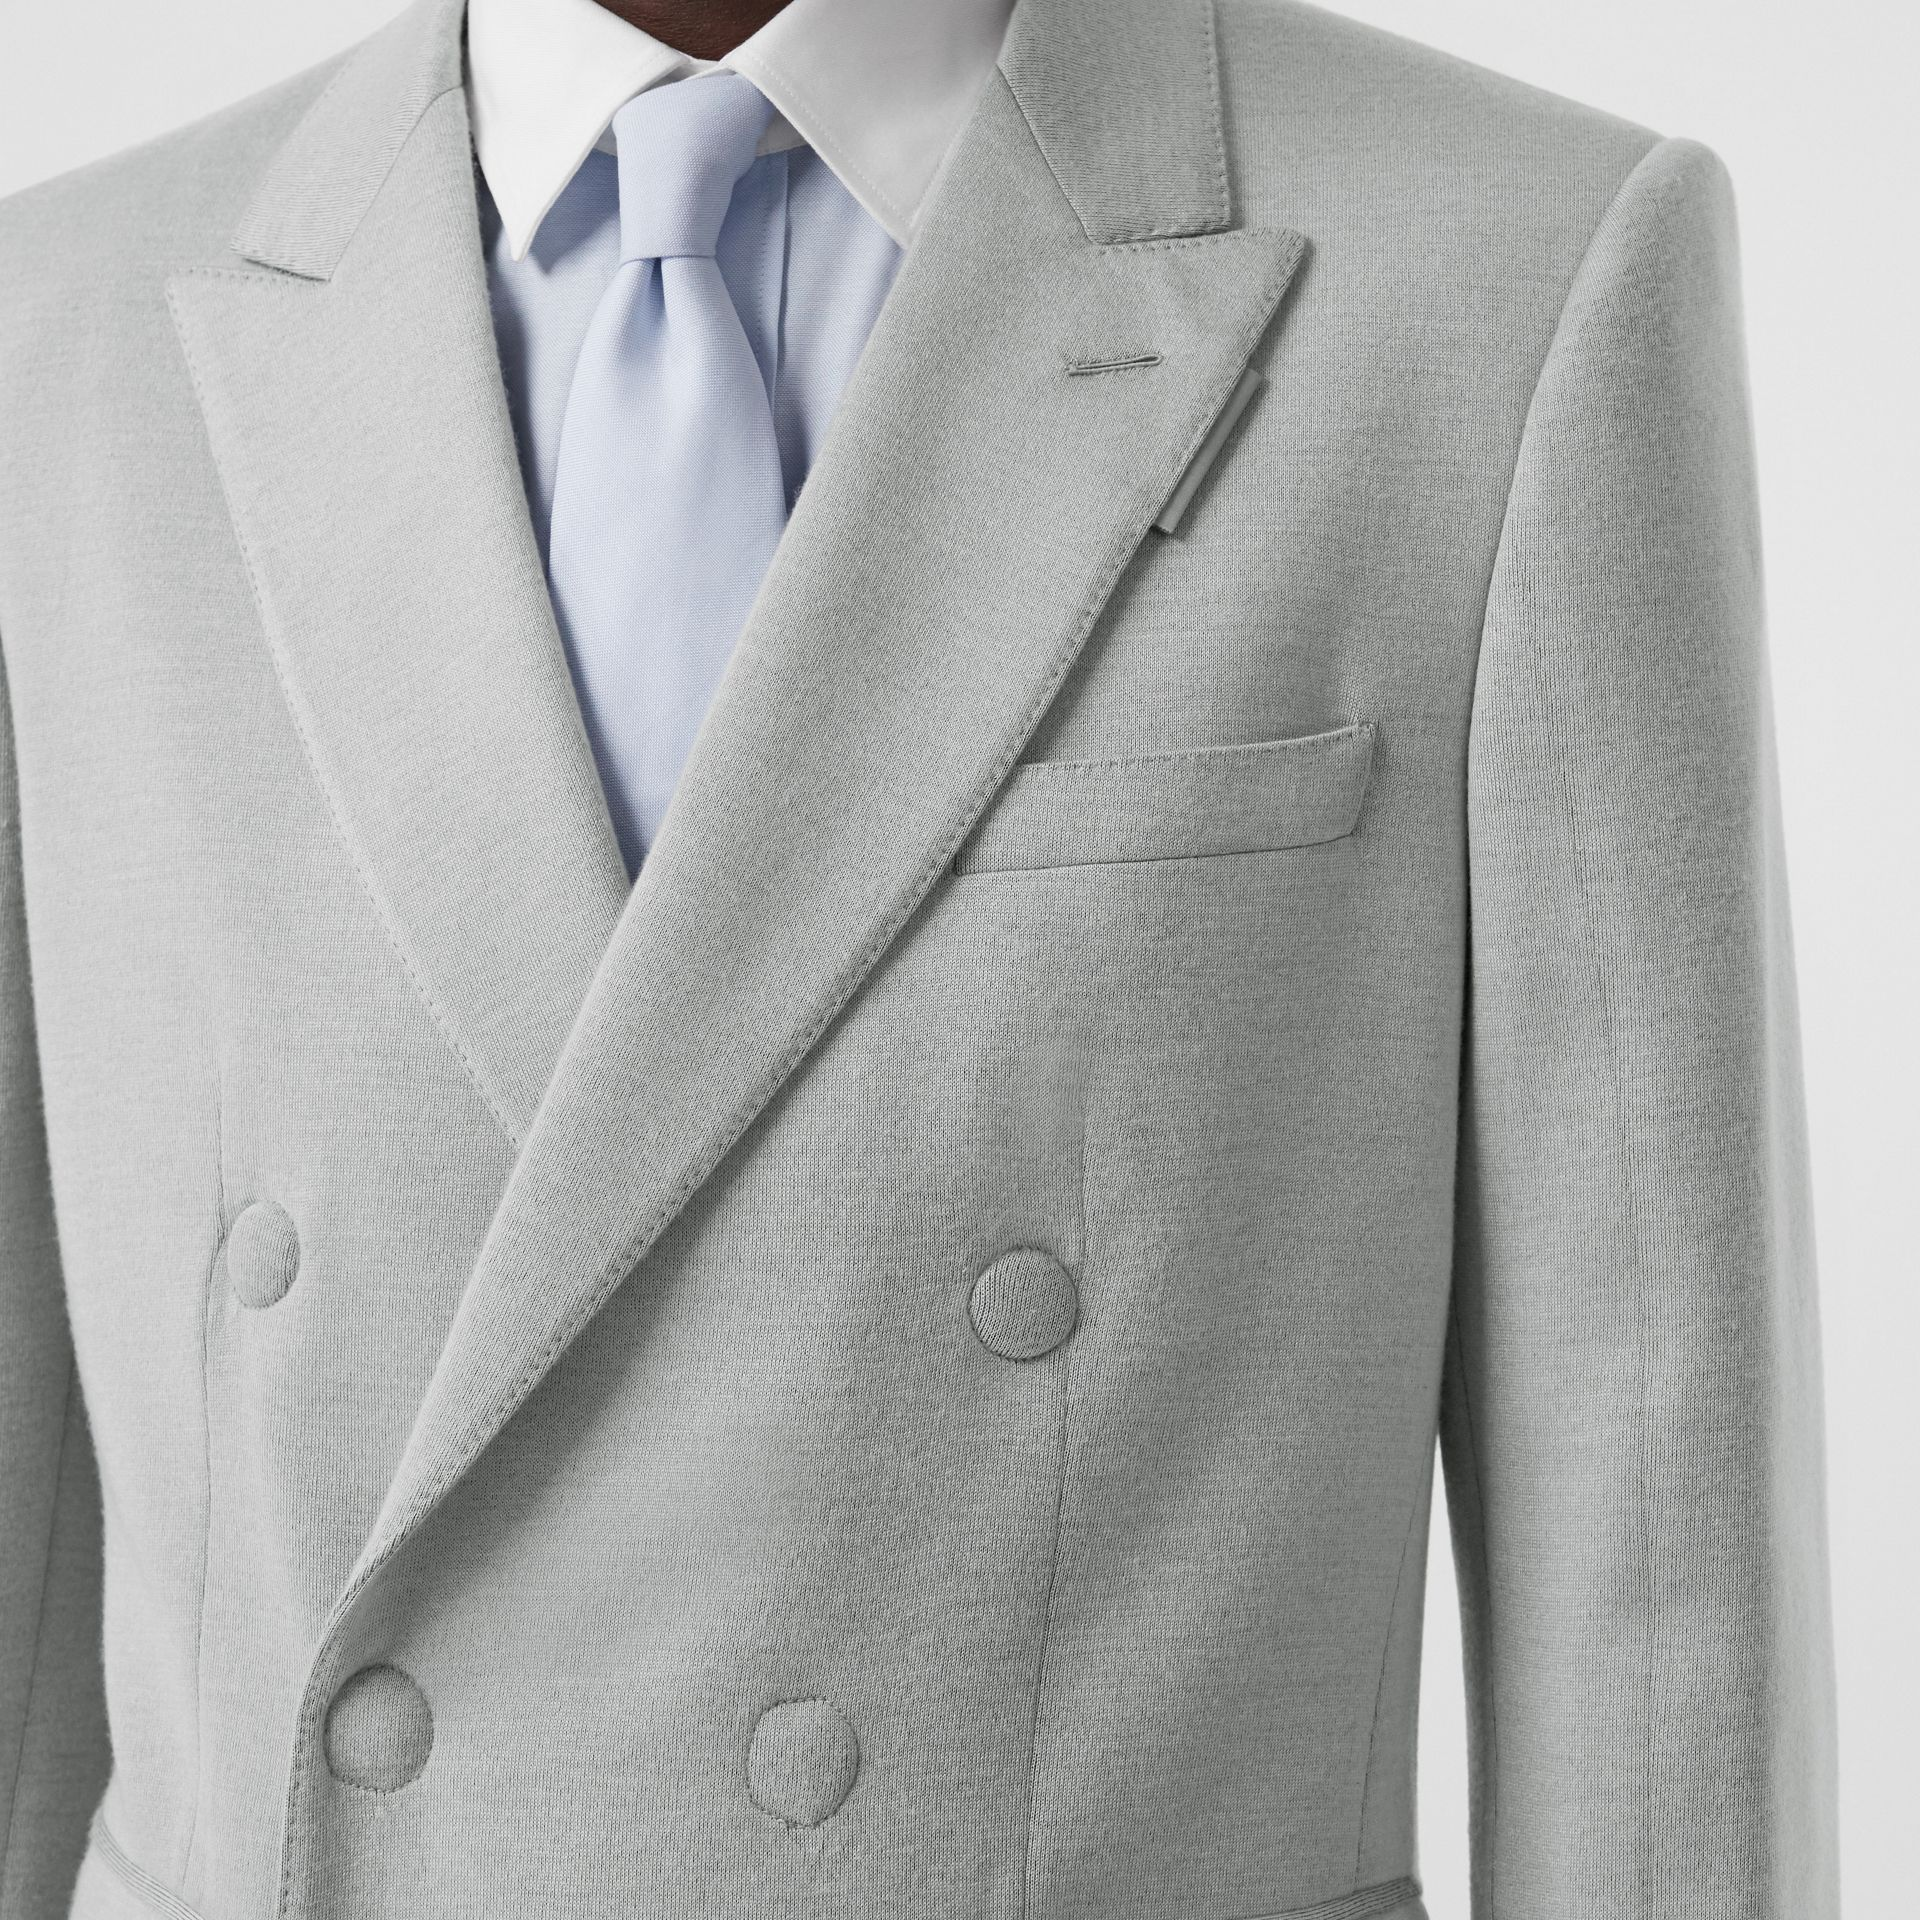 English Fit Cashmere Silk Jersey Double-breasted Jacket in Light Pebble Grey | Burberry United States - gallery image 5